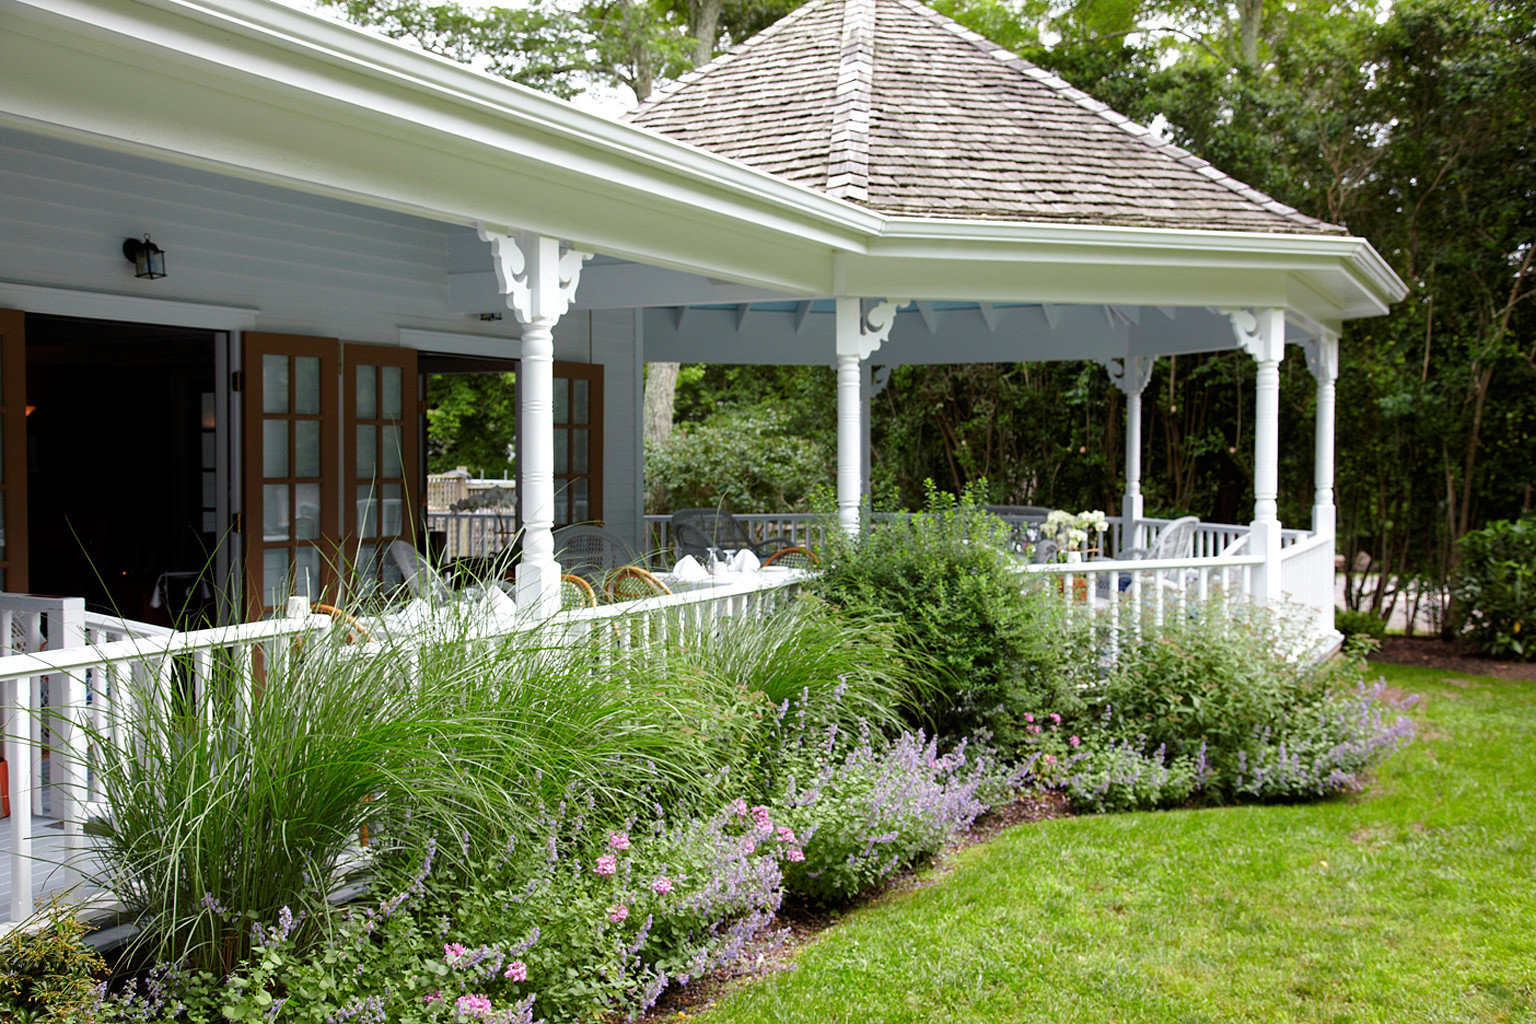 Boutique Classic Country Exterior Grounds Luxury Patio grass tree building house property porch Garden gazebo backyard outdoor structure yard home orangery cottage lawn bushes lush